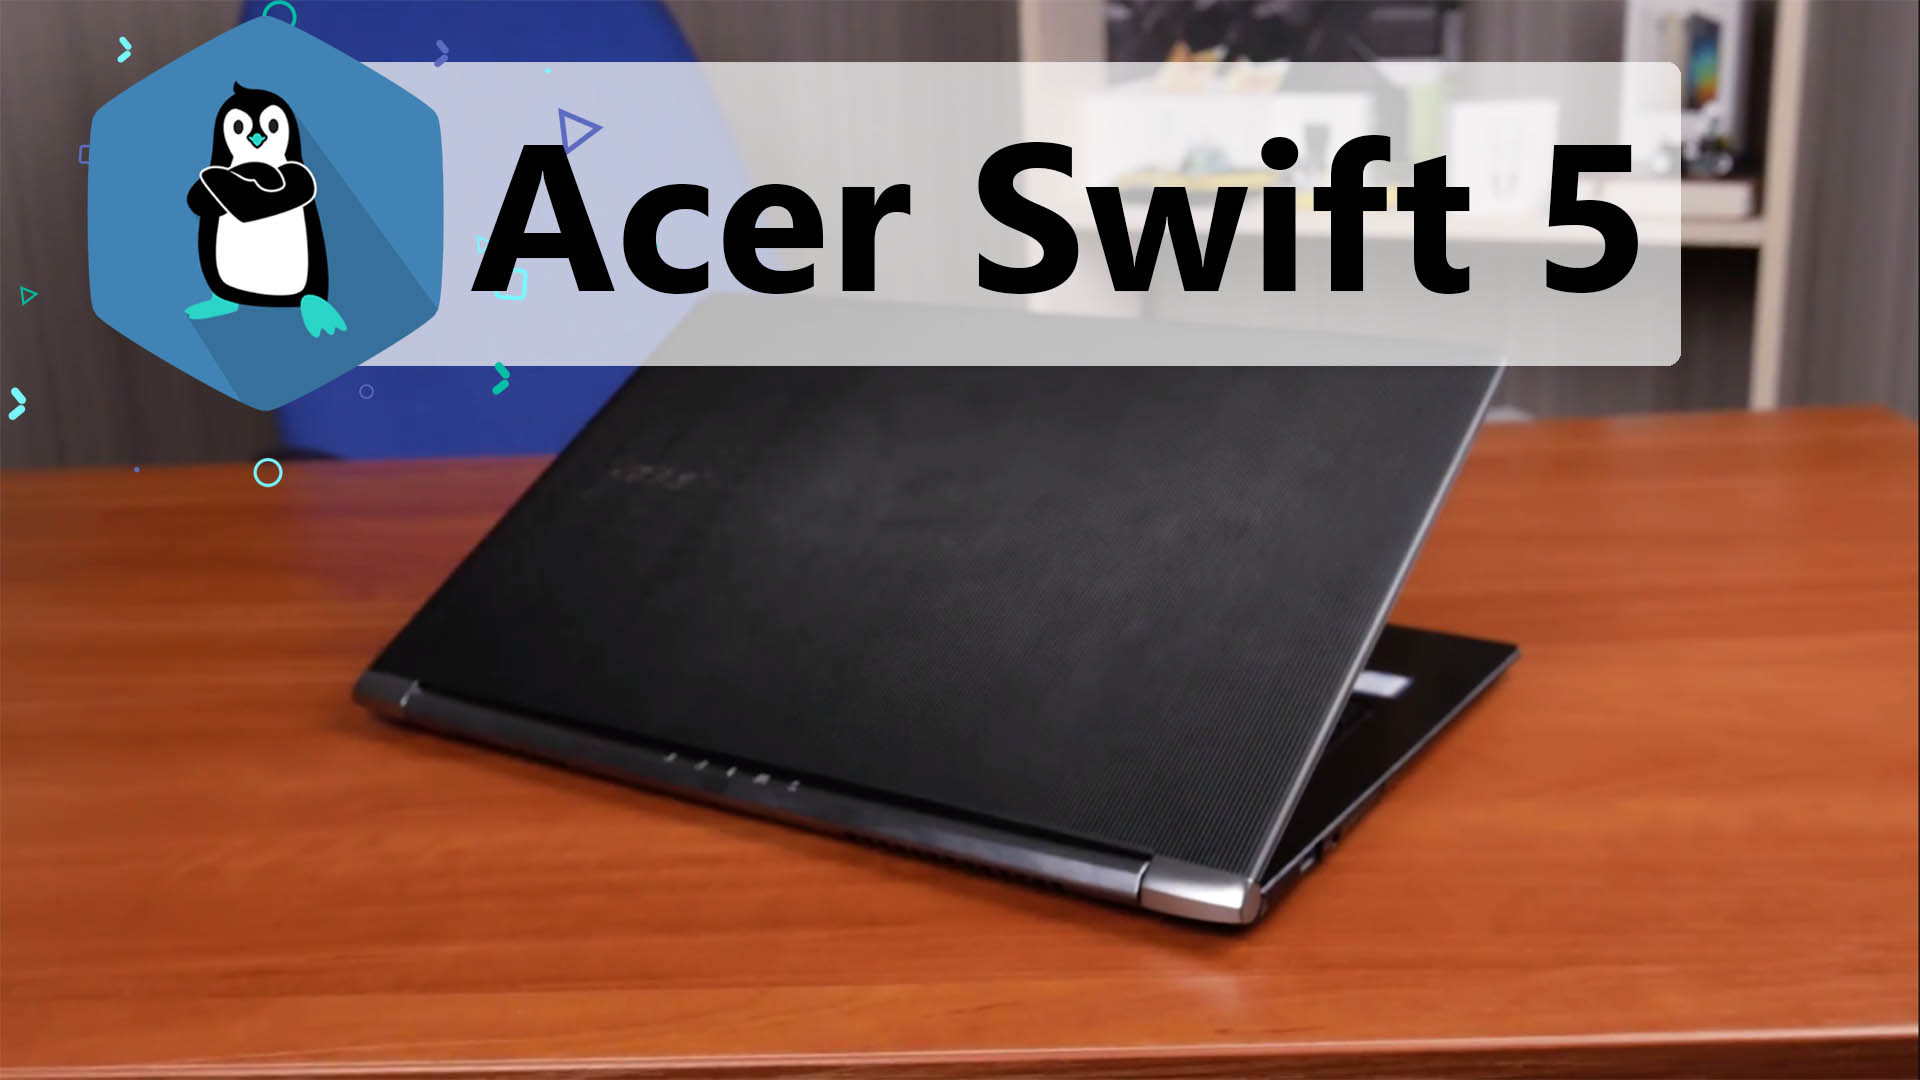 Acer Swift 5 SF514-51